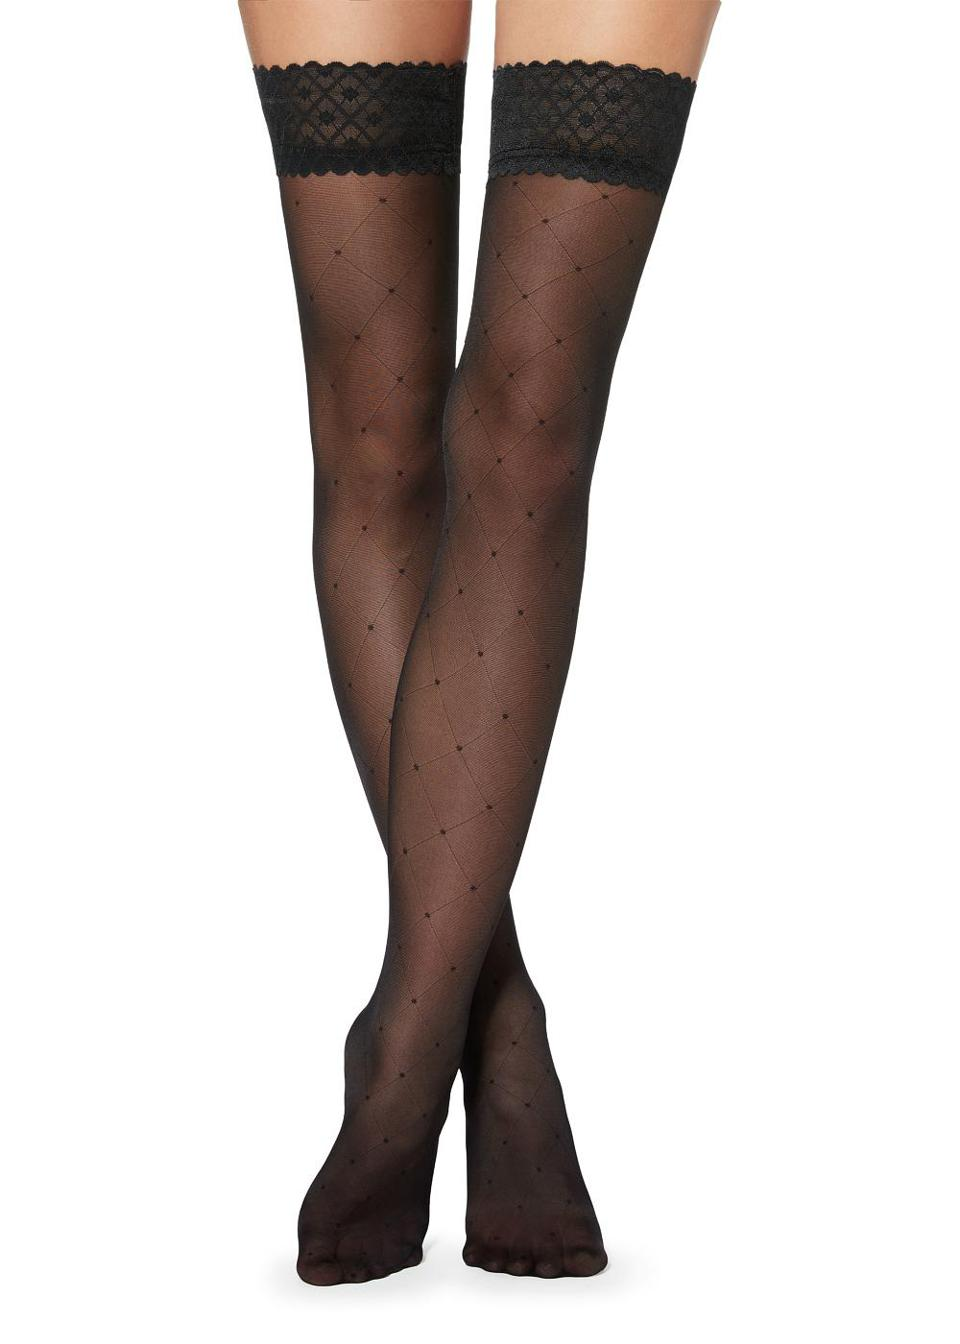 Diamond and polka dot patterned hold-ups with tulle top by Calzedonia